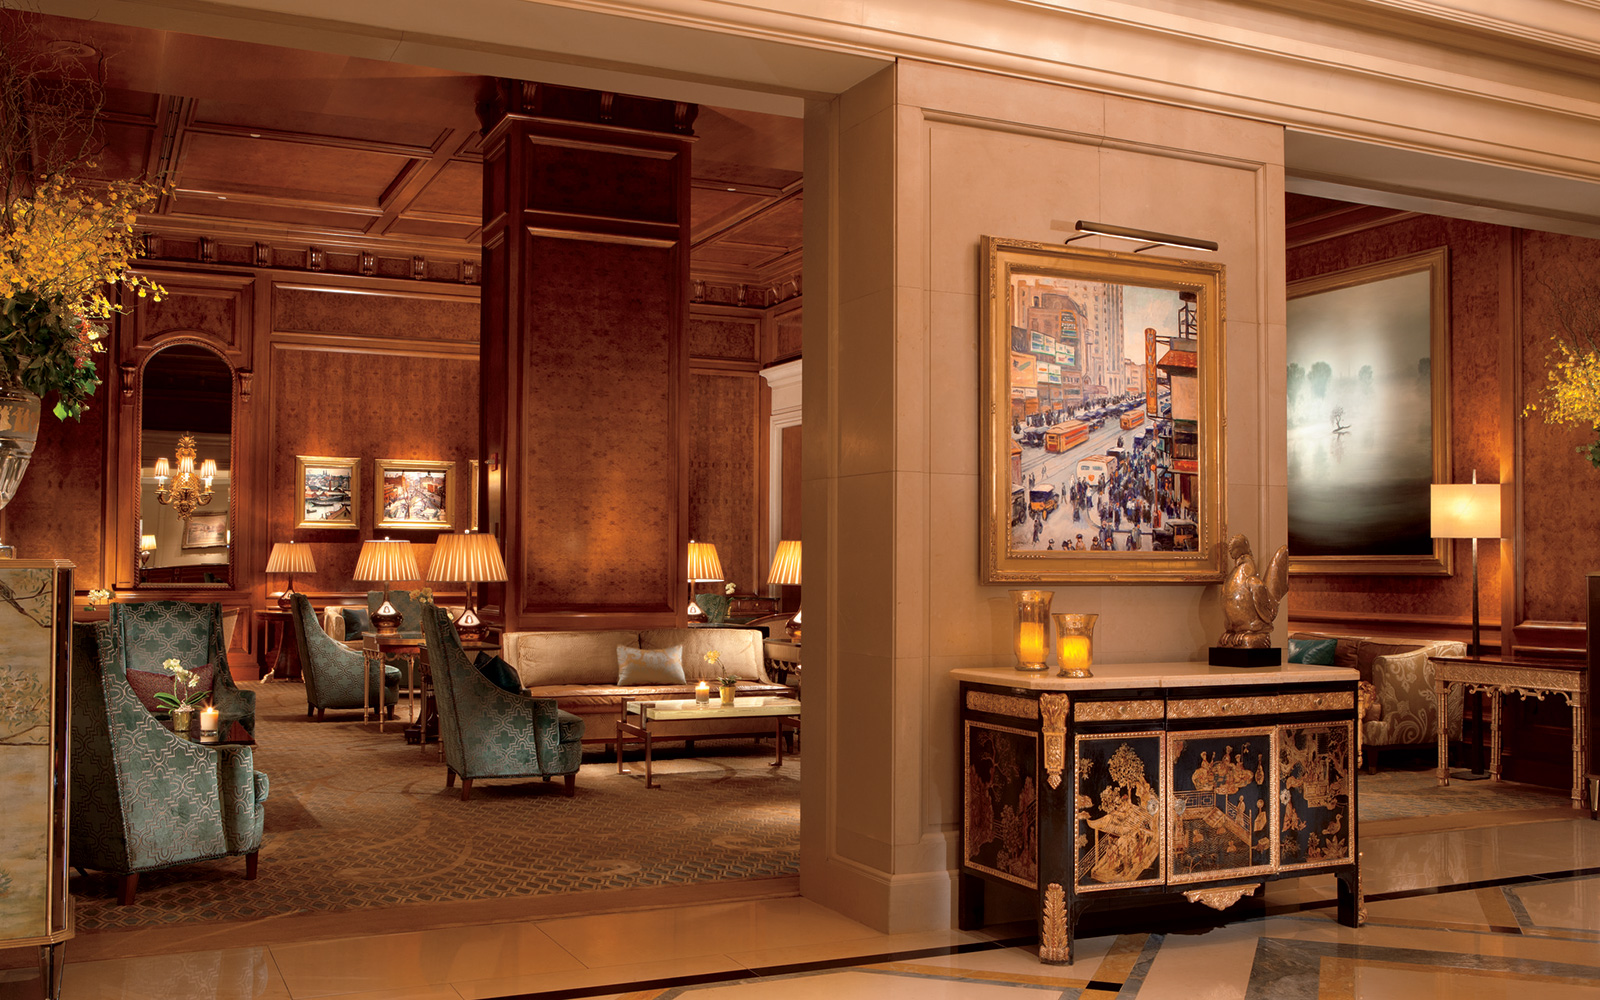 No. 9: Ritz-Carlton New York, Central Park